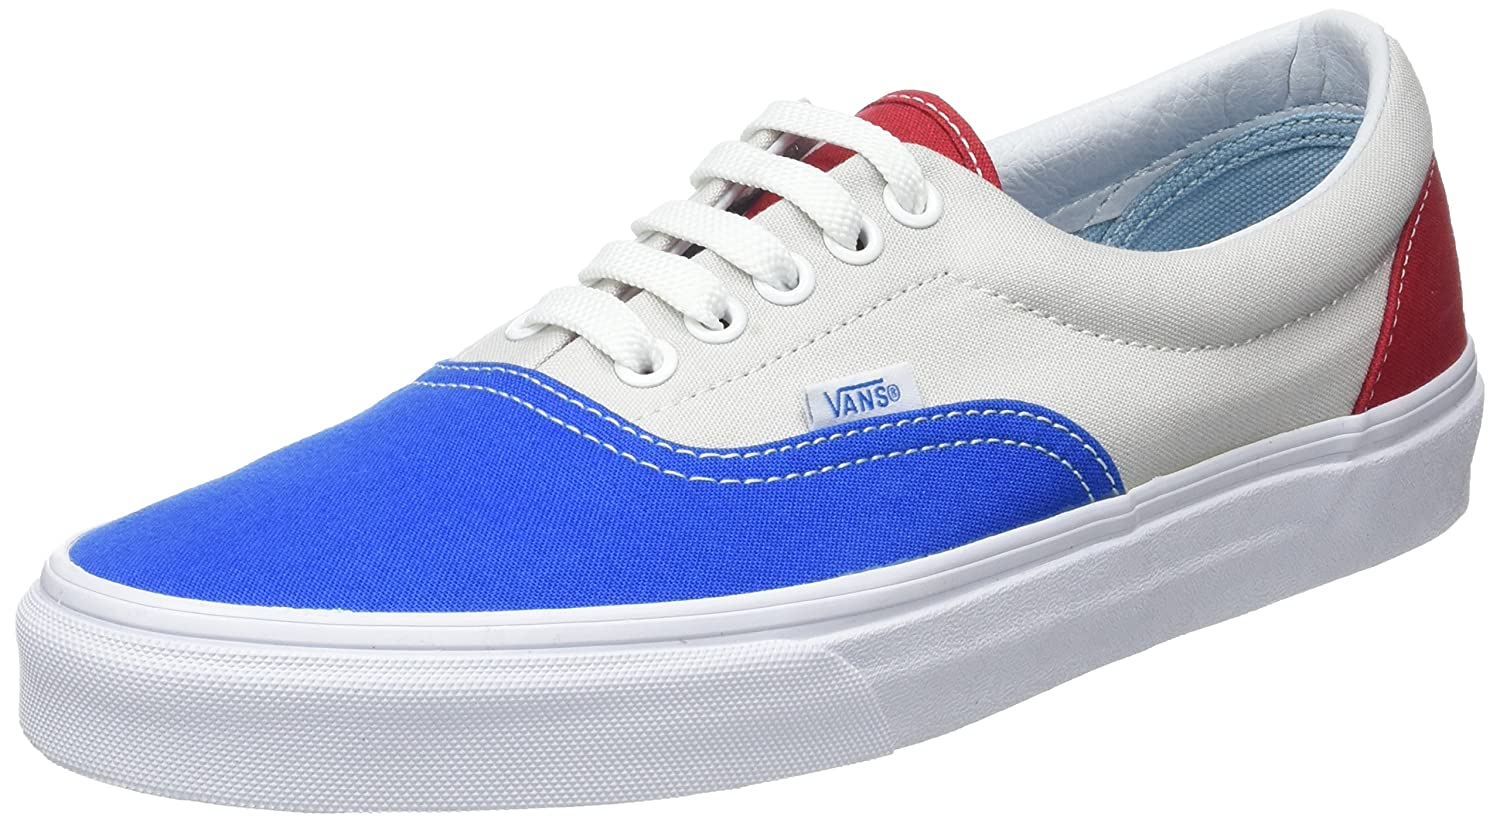 Vans Unisex Era Skate Shoes, Classic Low-Top Lace-up Style in Durable Double-Stitched Canvas and Original Waffle Outsole B01I2AXIWQ 8.5 B(M) US Women / 7 D(M) US Men |Blue/Gray/Red